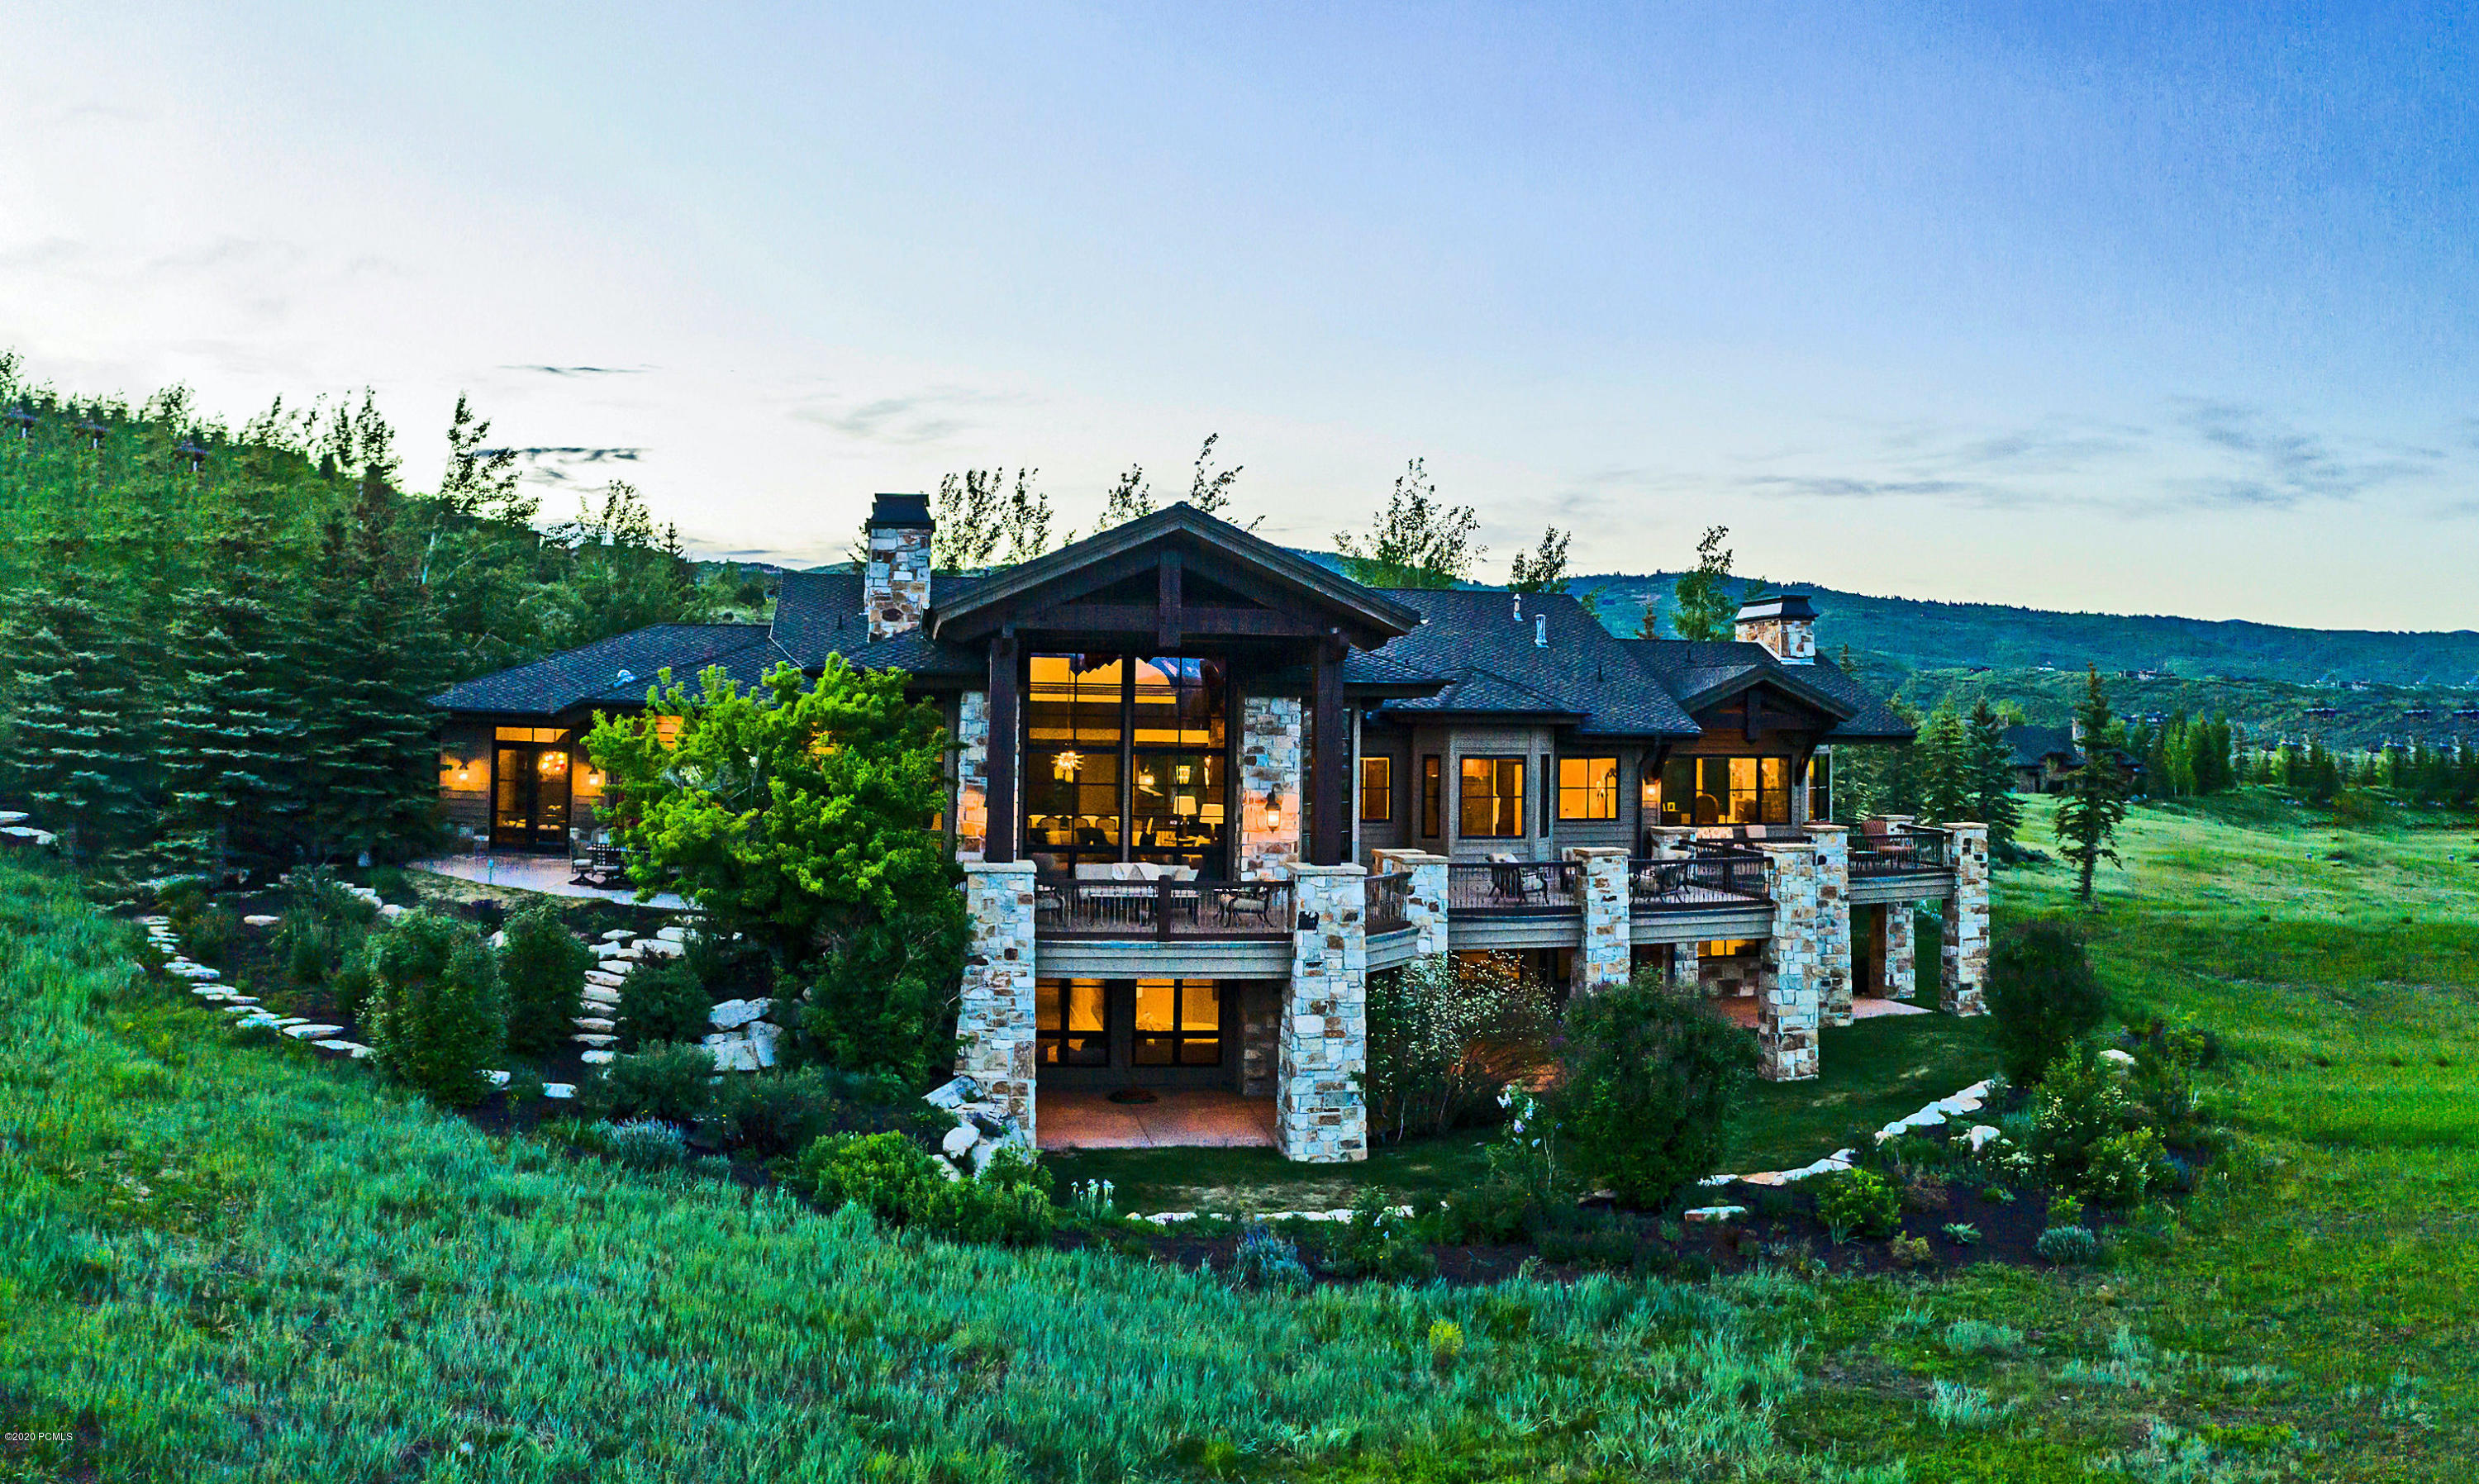 7418 Glenwild Drive, Park City, Utah 84098, 5 Bedrooms Bedrooms, ,7 BathroomsBathrooms,Single Family,For Sale,Glenwild,20190109112430415765000000